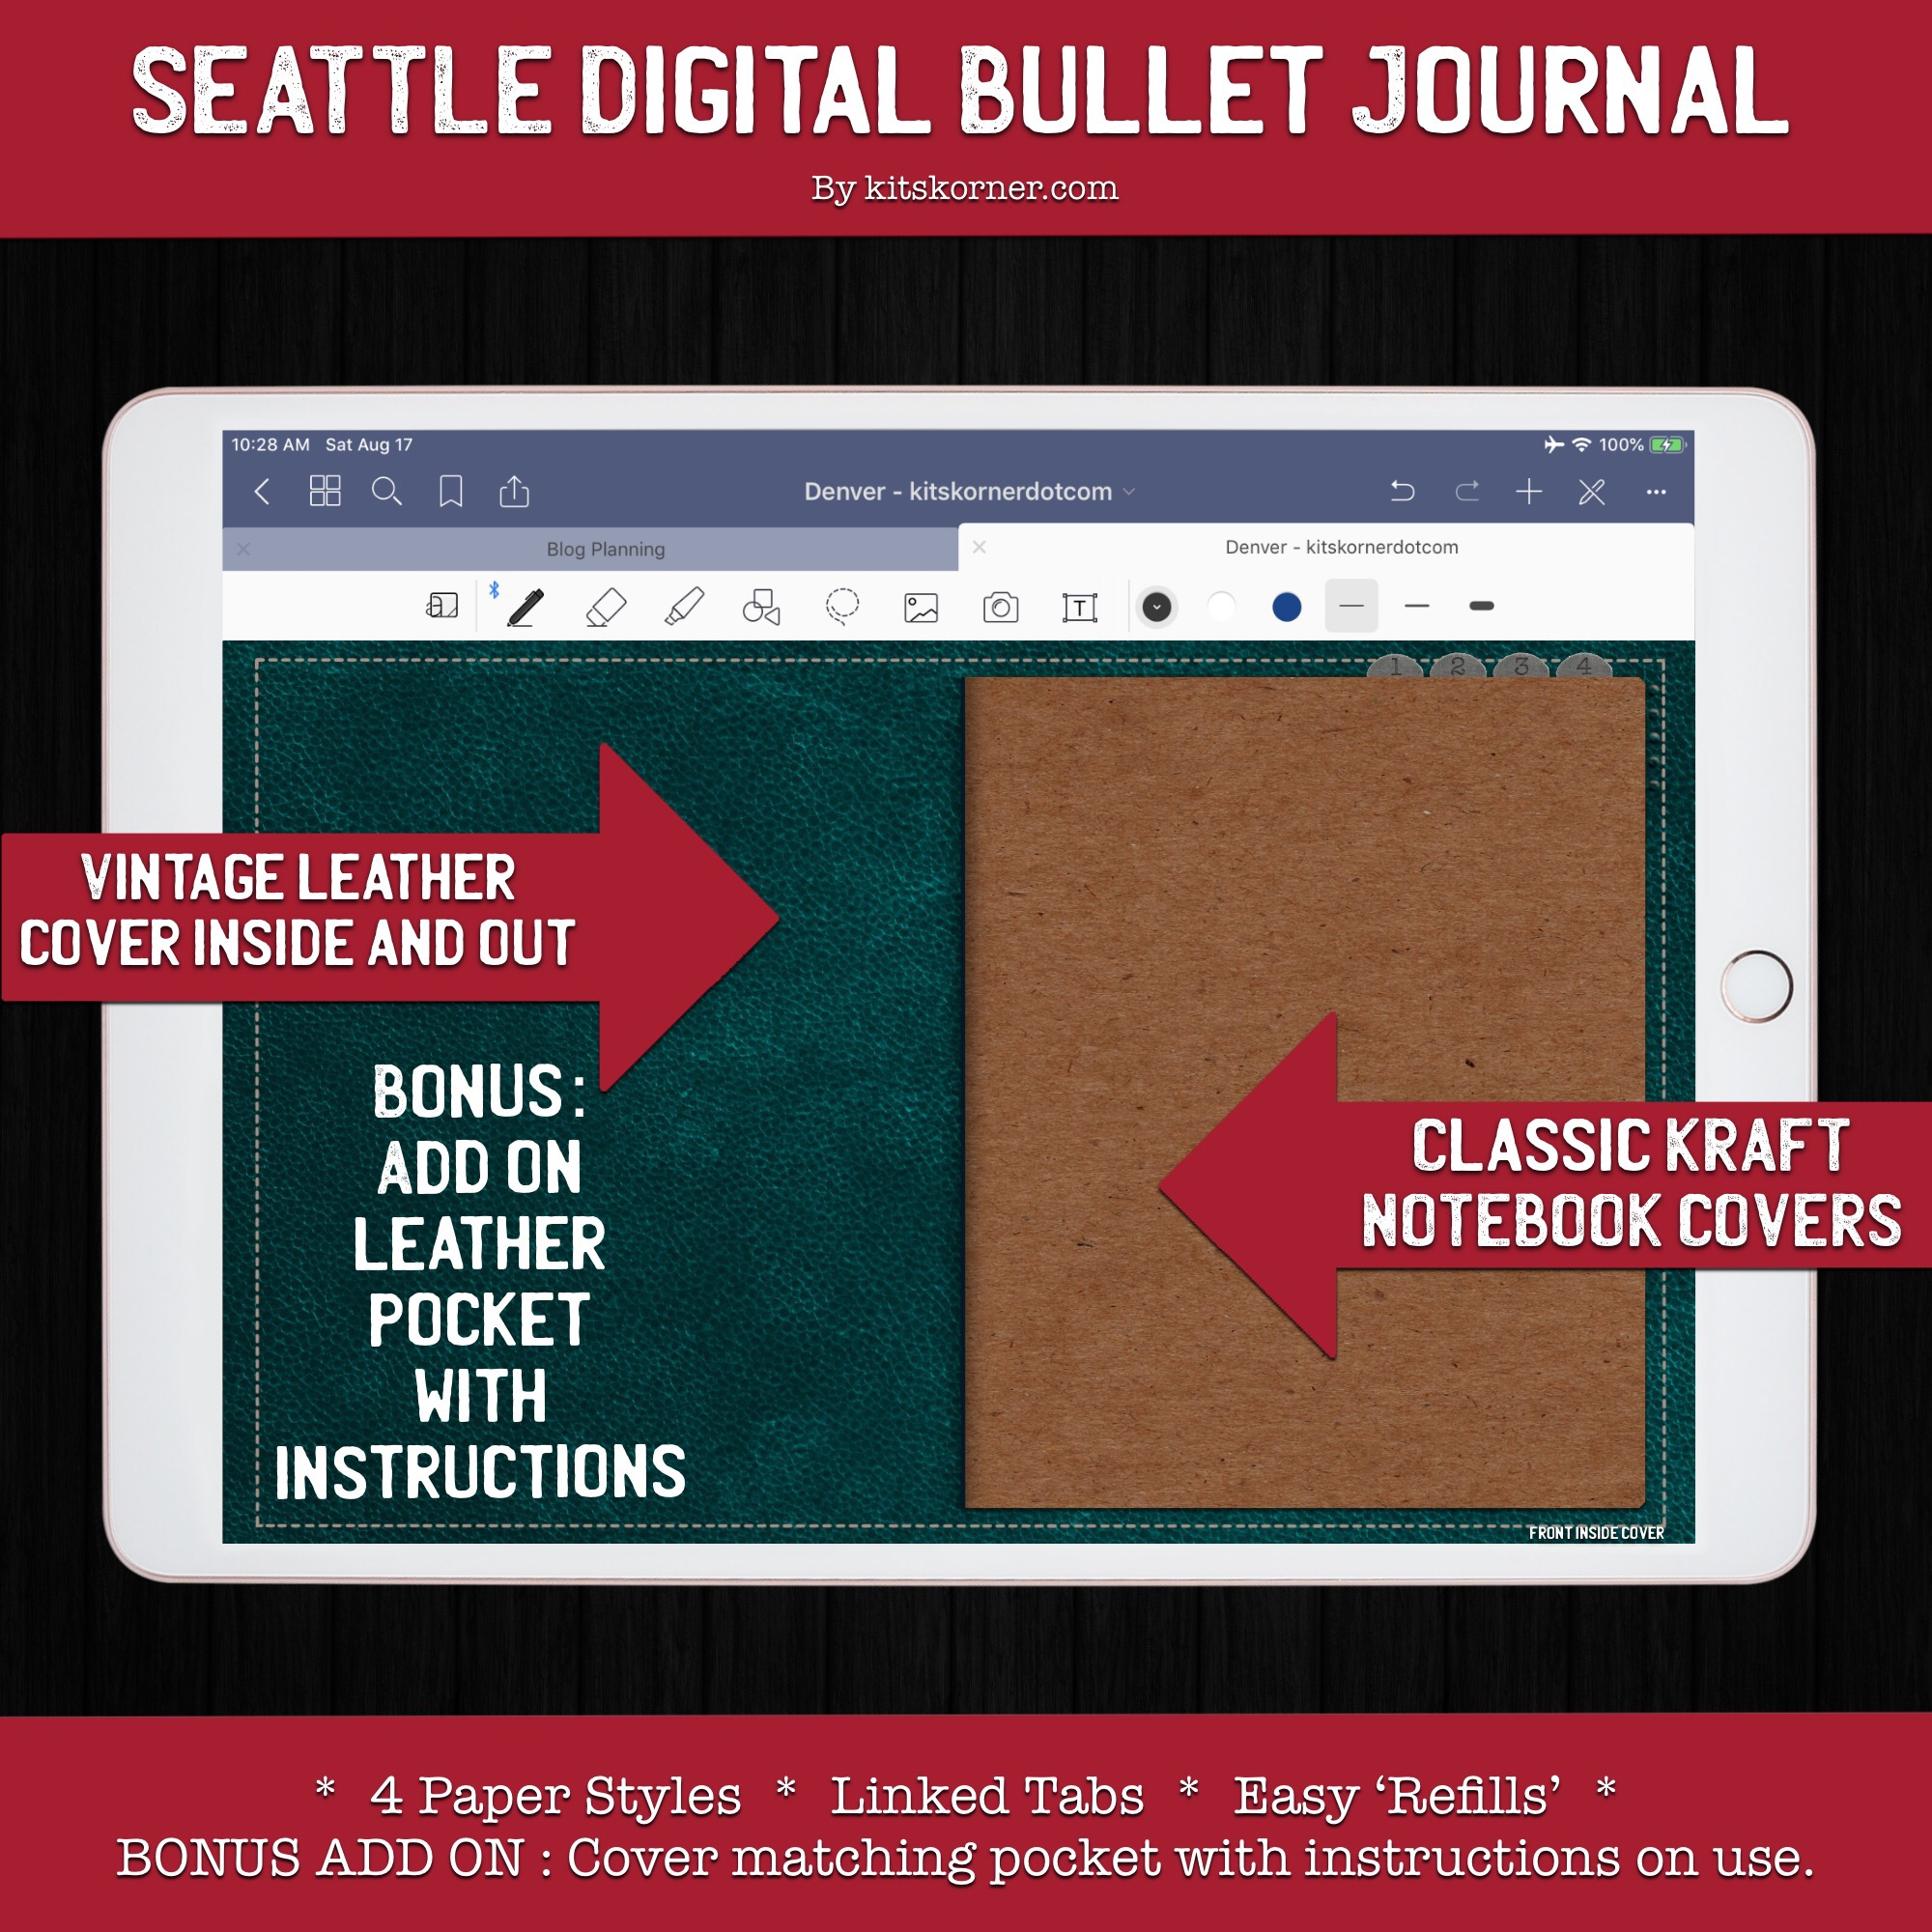 Seattle Digital Bullet Journal